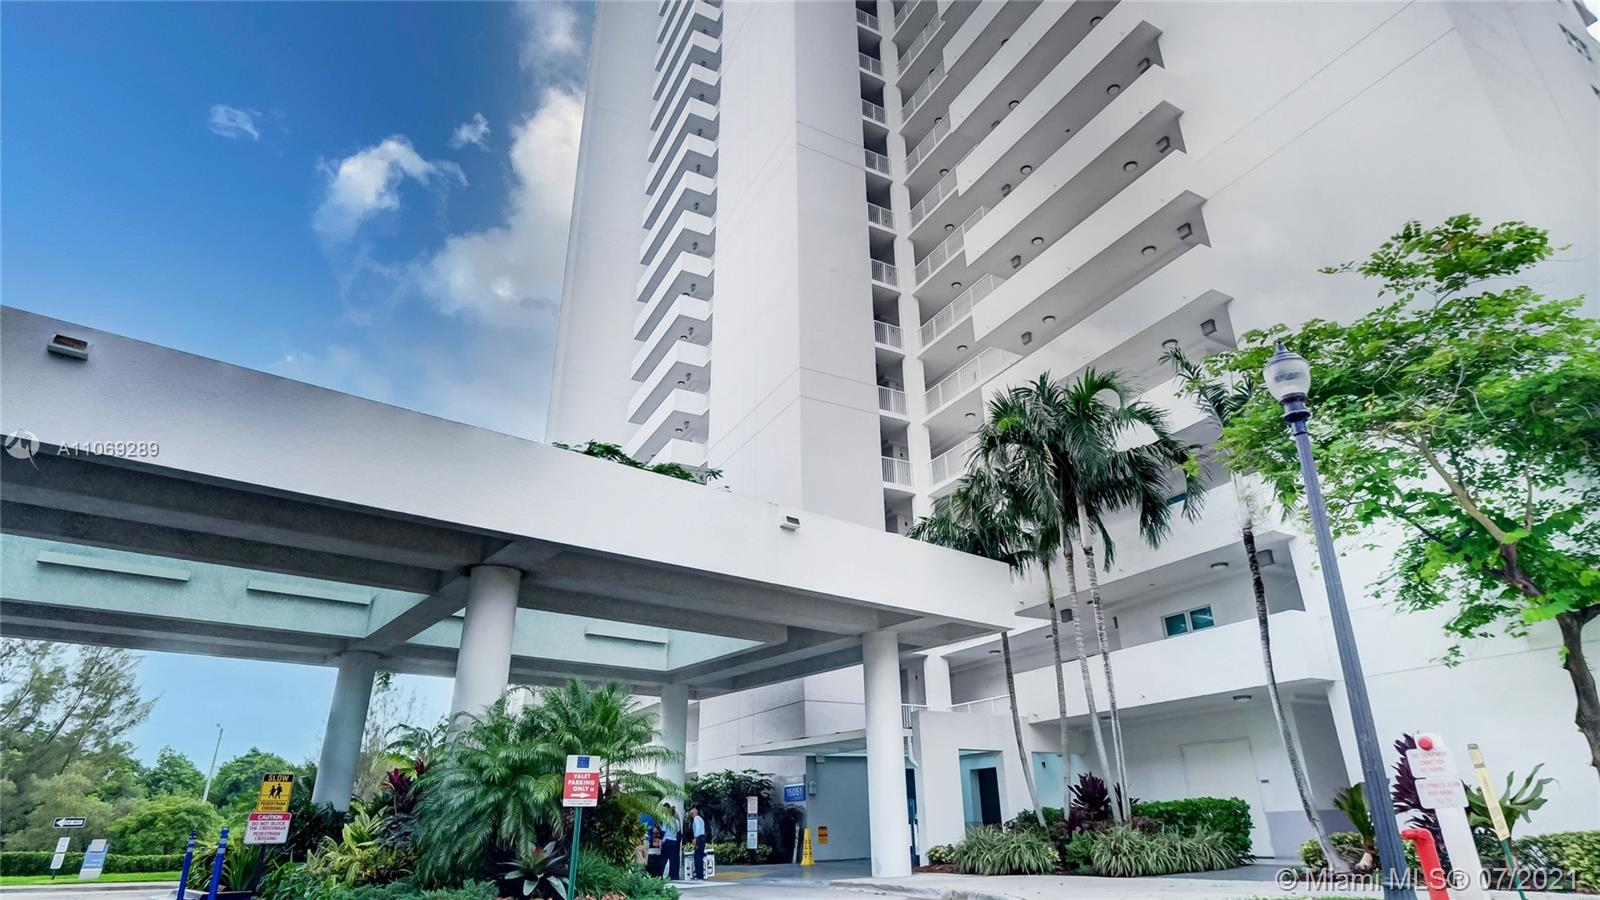 One Fifty One At Biscayne #1406 - 15051 E Royal Oaks Ln #1406, North Miami, FL 33181